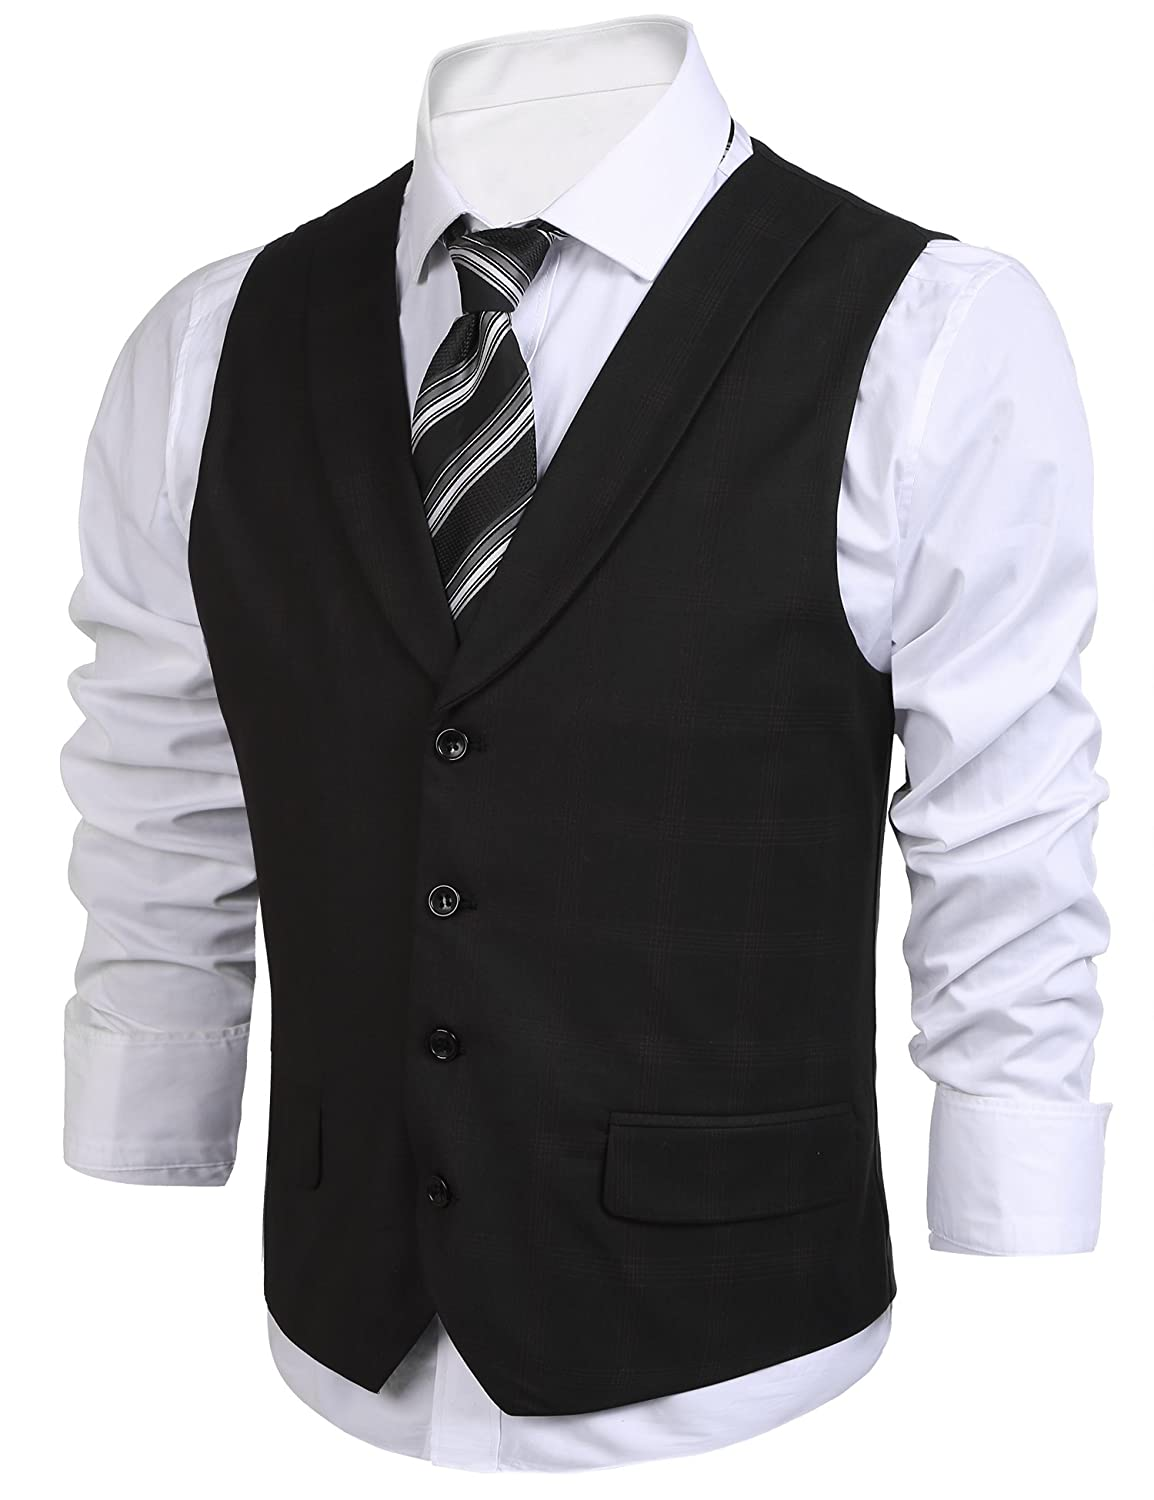 Men's Vintage Vests, Sweater Vests Jinidu Mens Lattice Casual Waistcoat Gentleman Lapel Business Suit Blazer Vest $31.99 AT vintagedancer.com